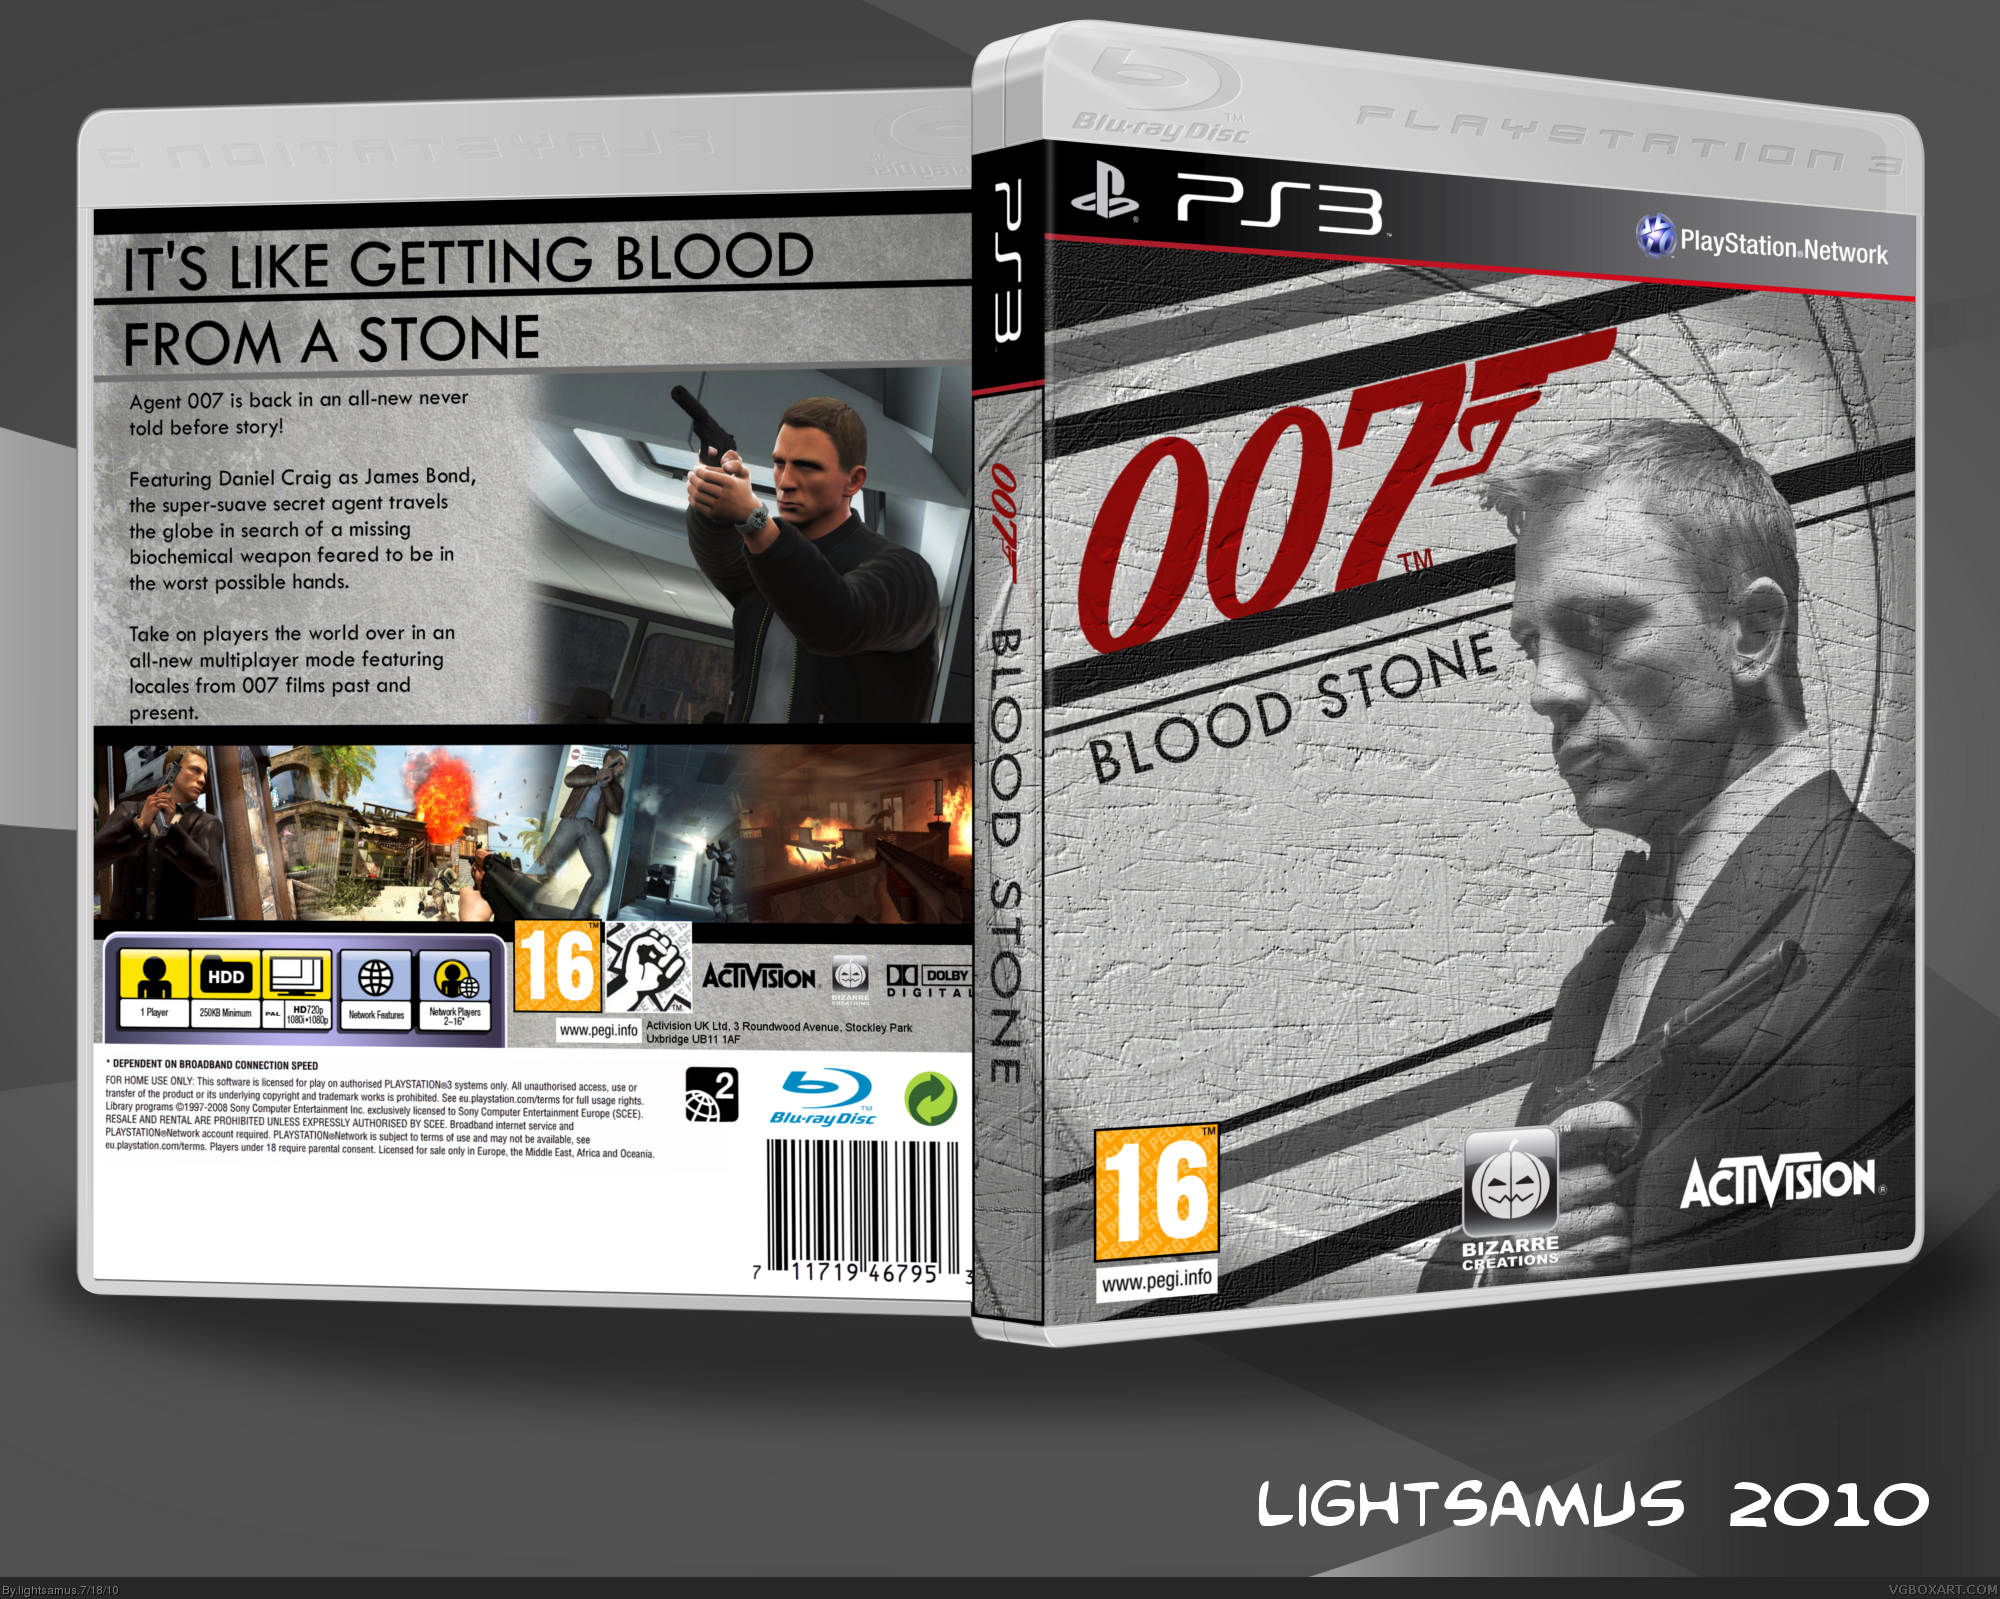 New 007 Game For Ps3 : Blood stone playstation box art cover by lightsamus